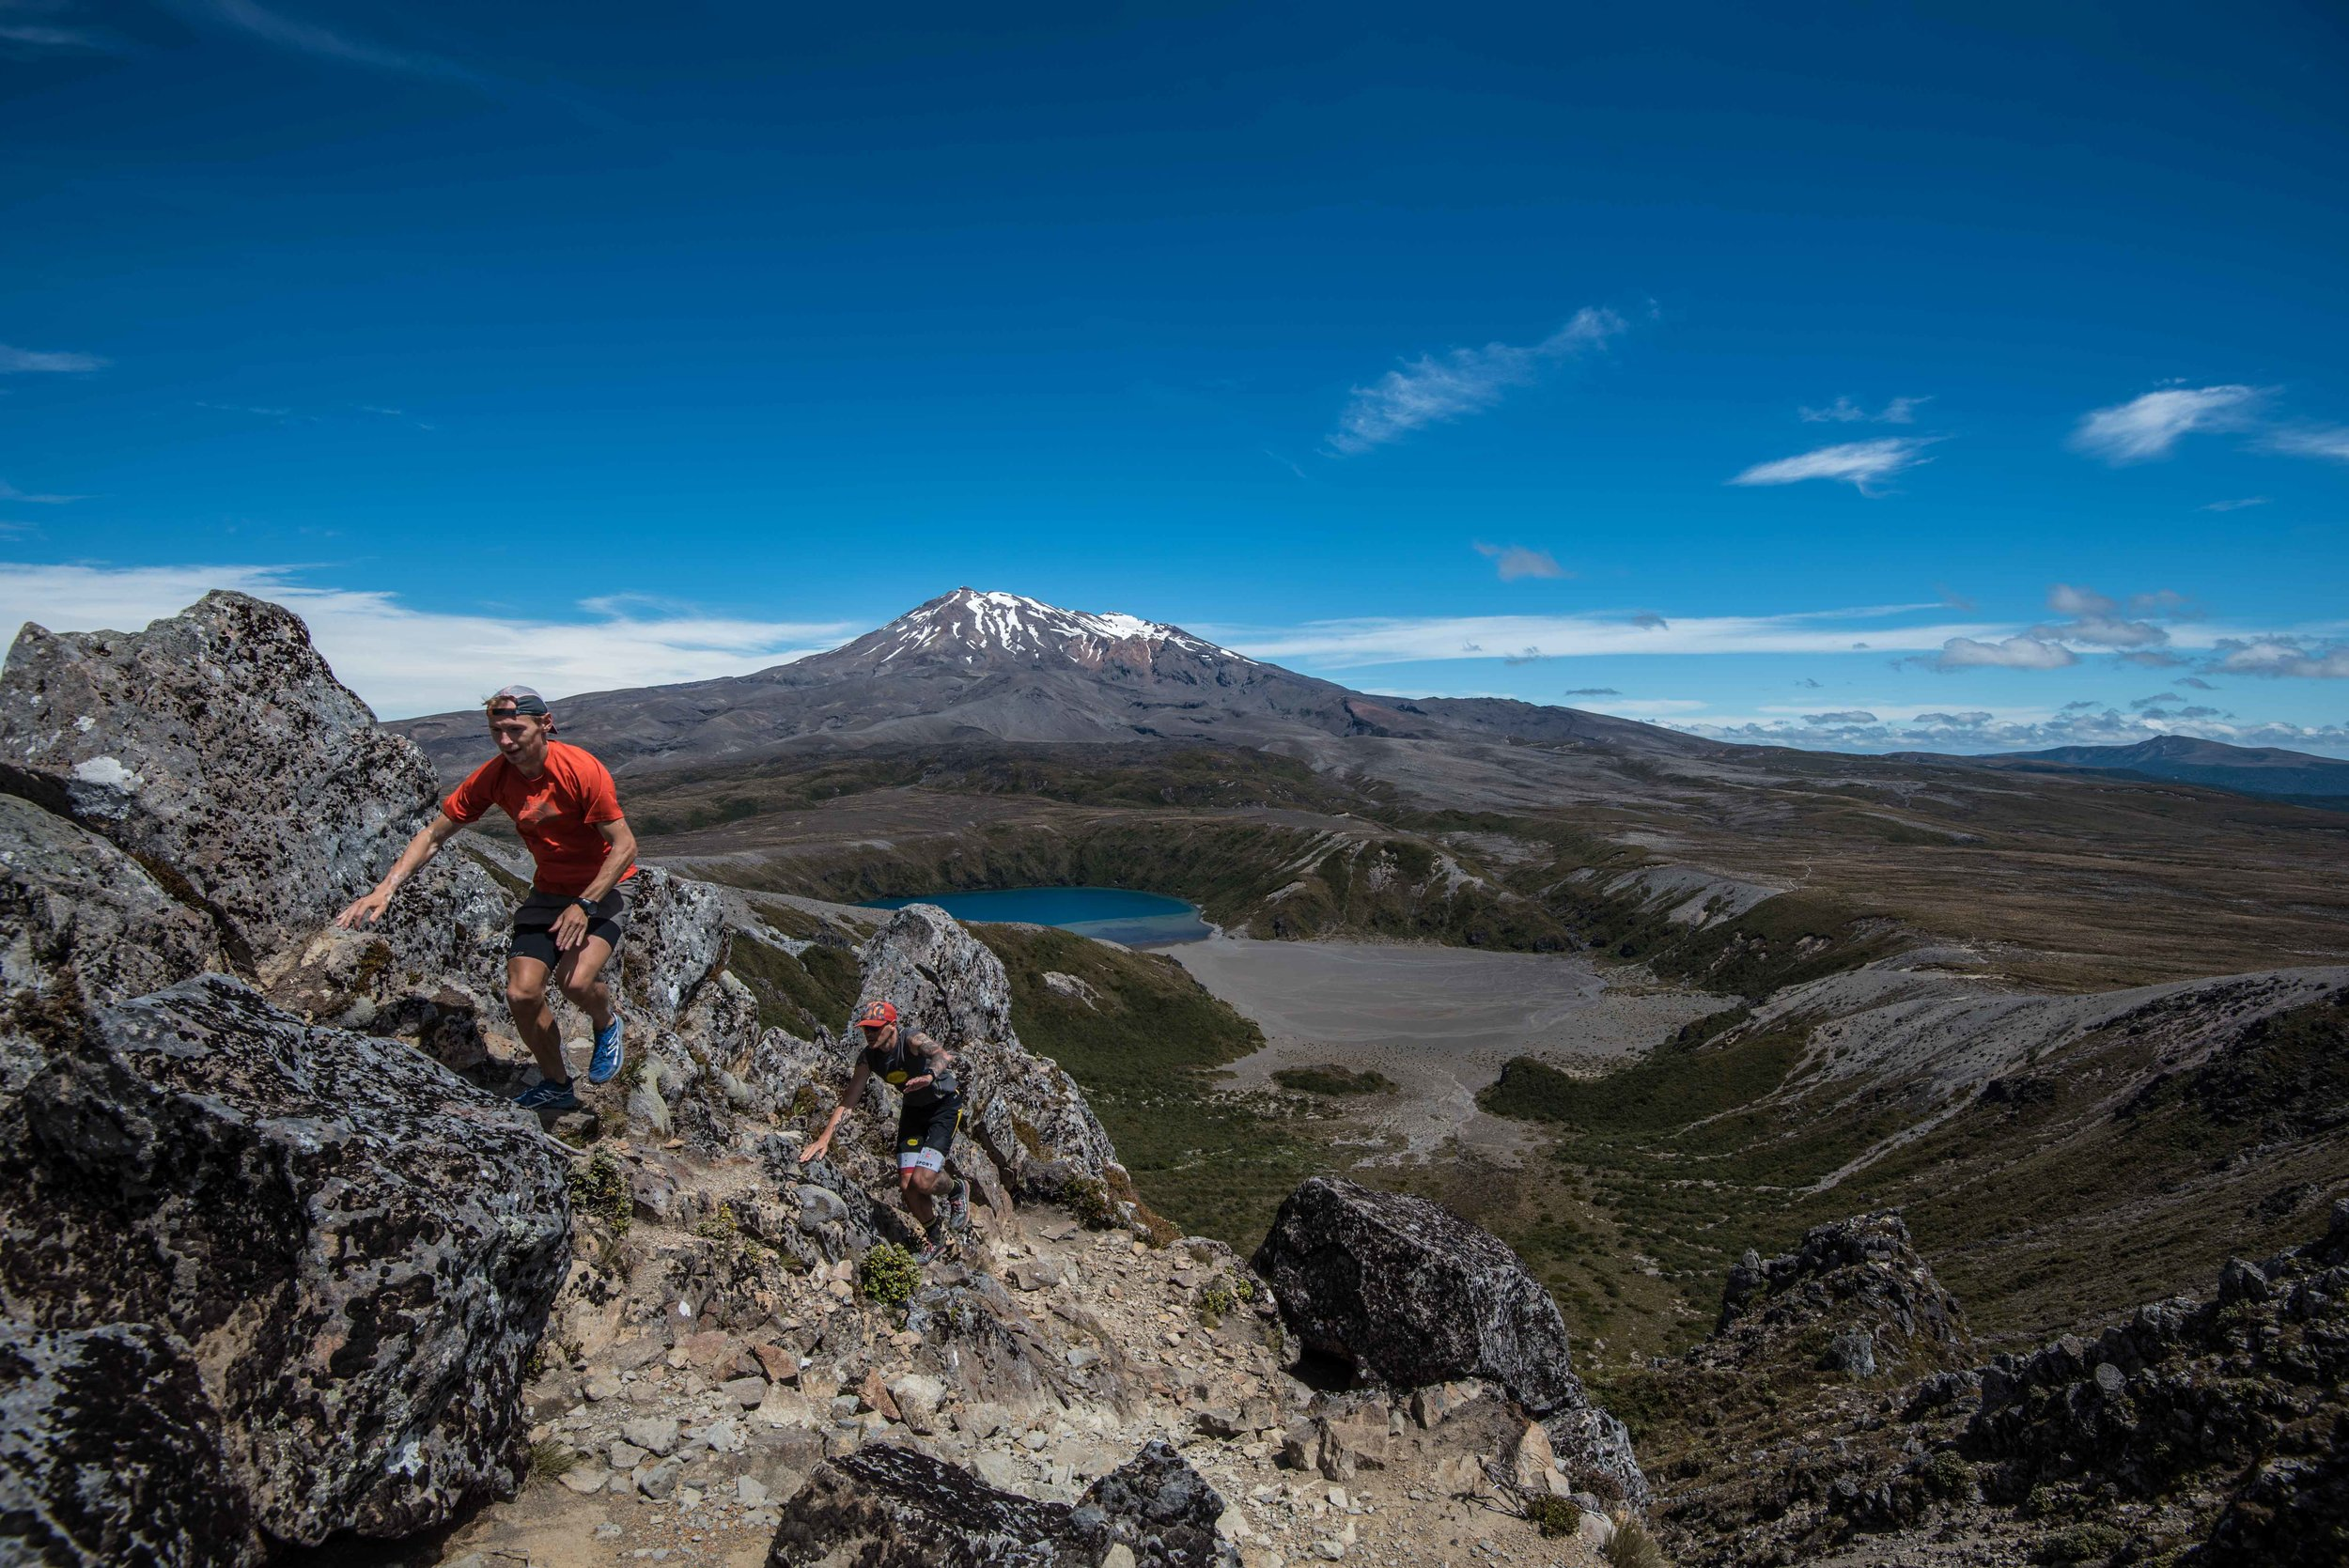 Exploring Tongariro National Park (NZ) with Gediminas Grinius